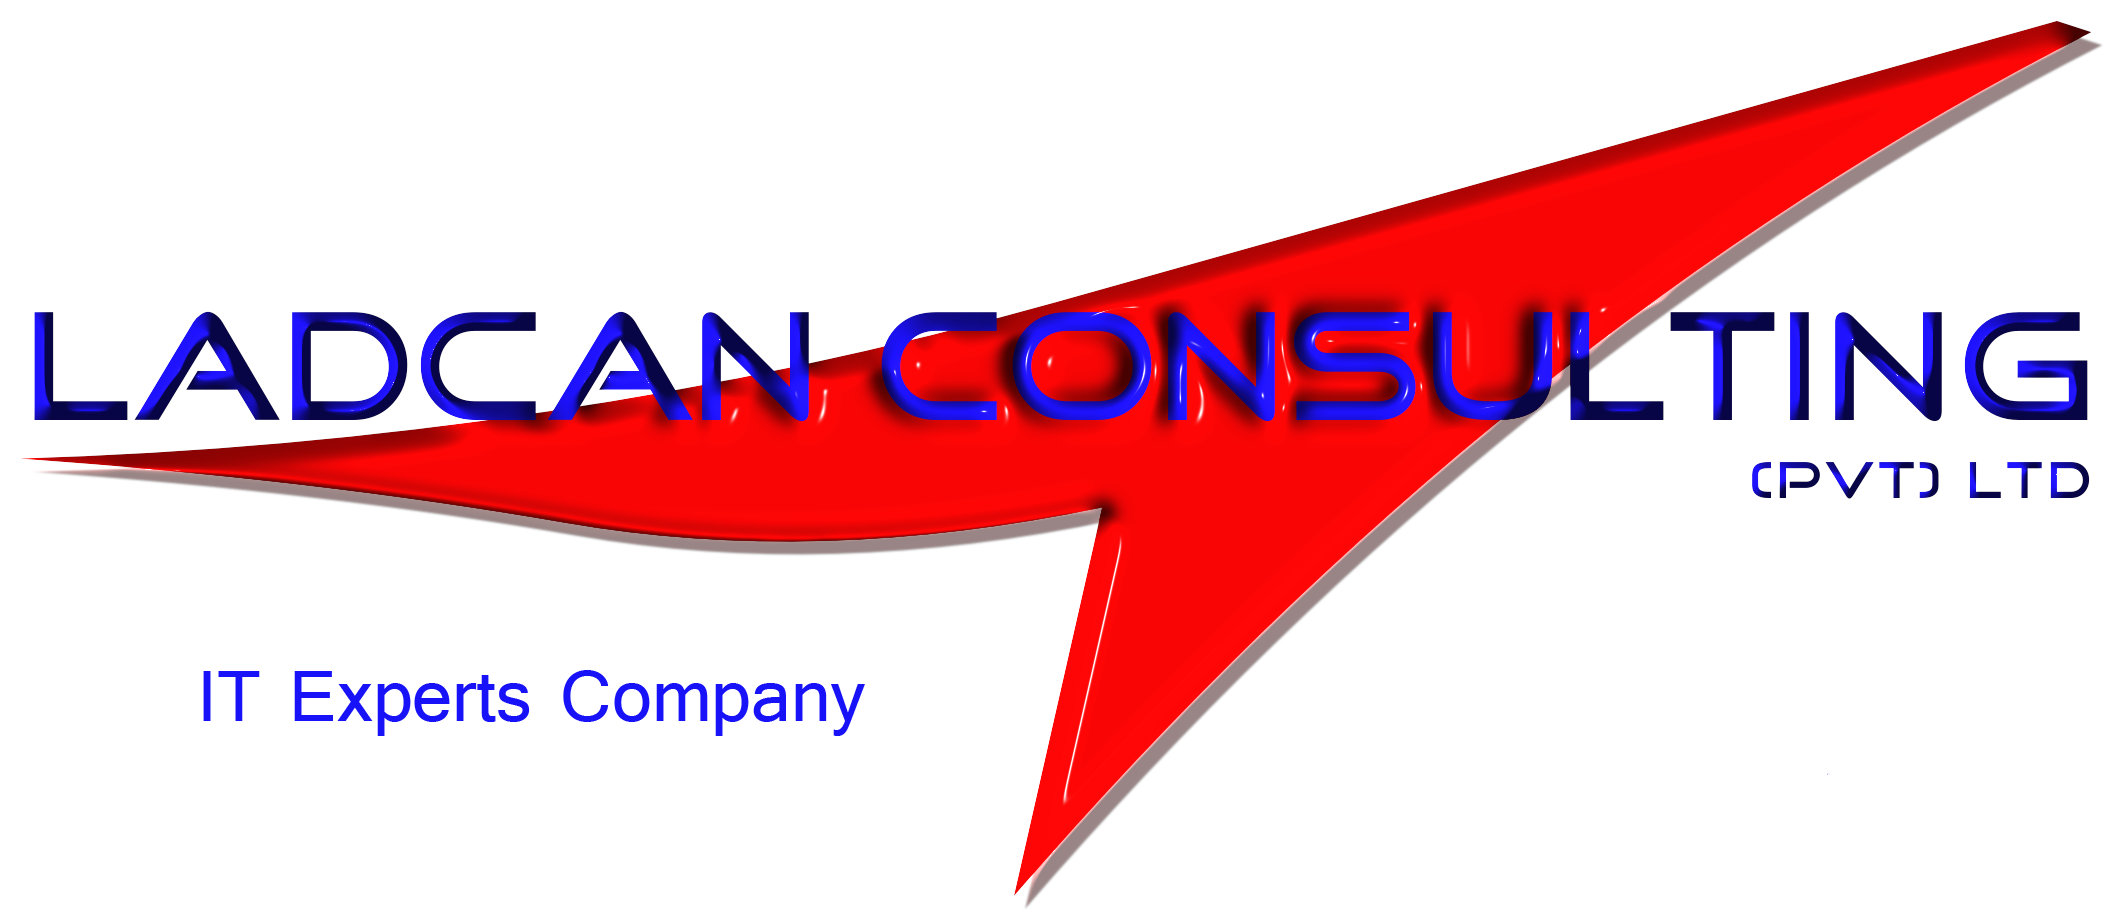 Ladcan Consulting Gif